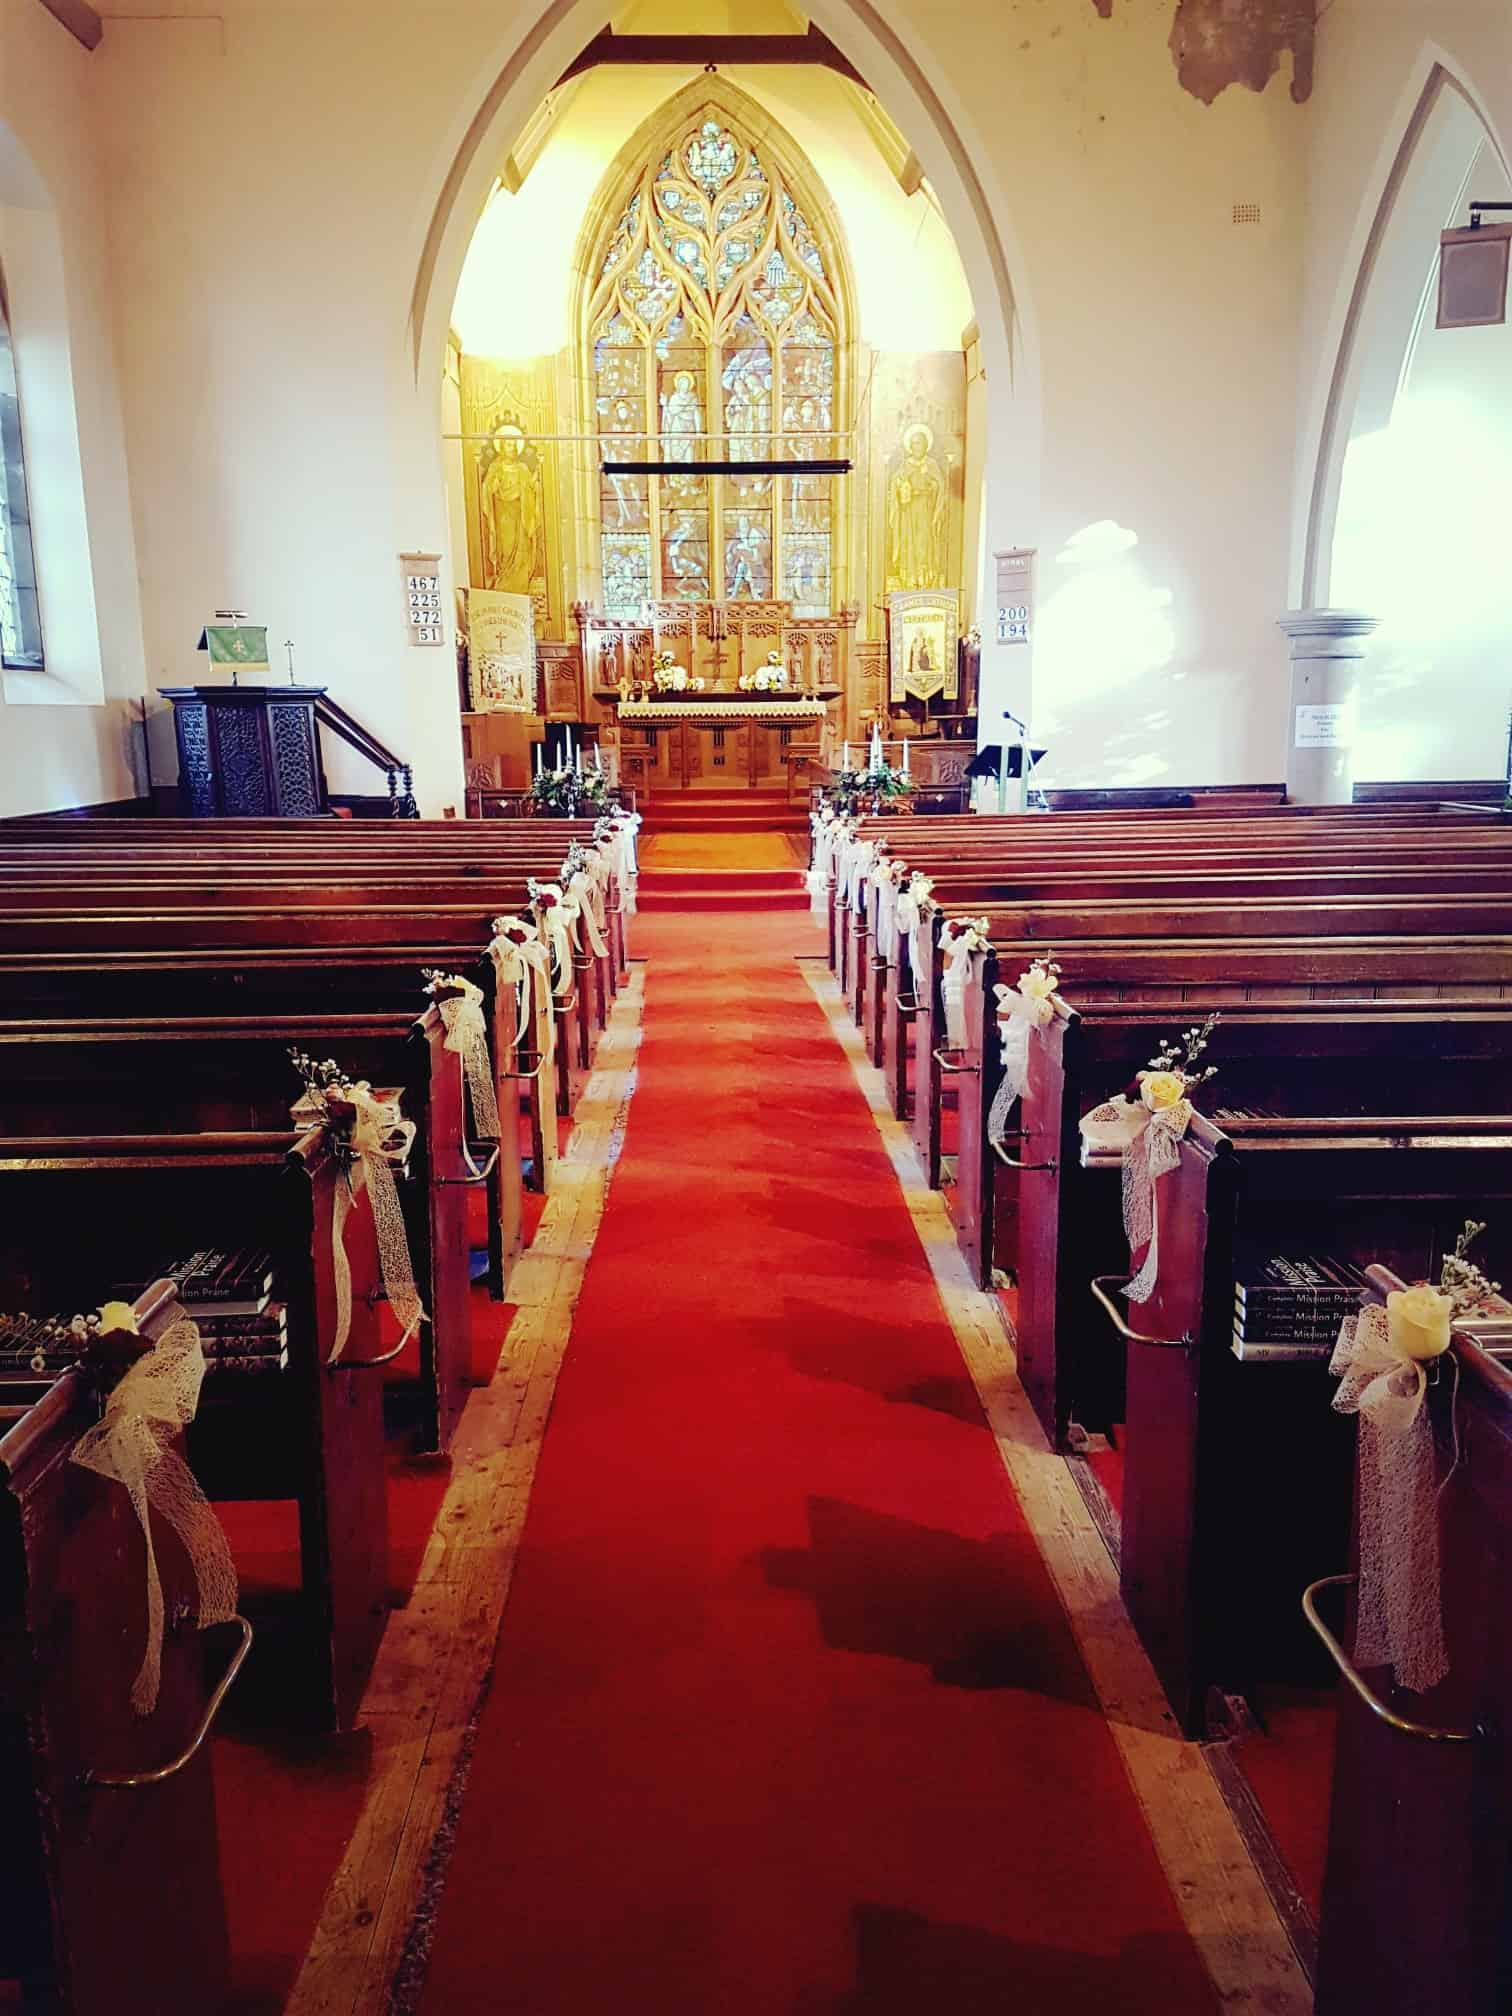 Down the aisle - pew ends